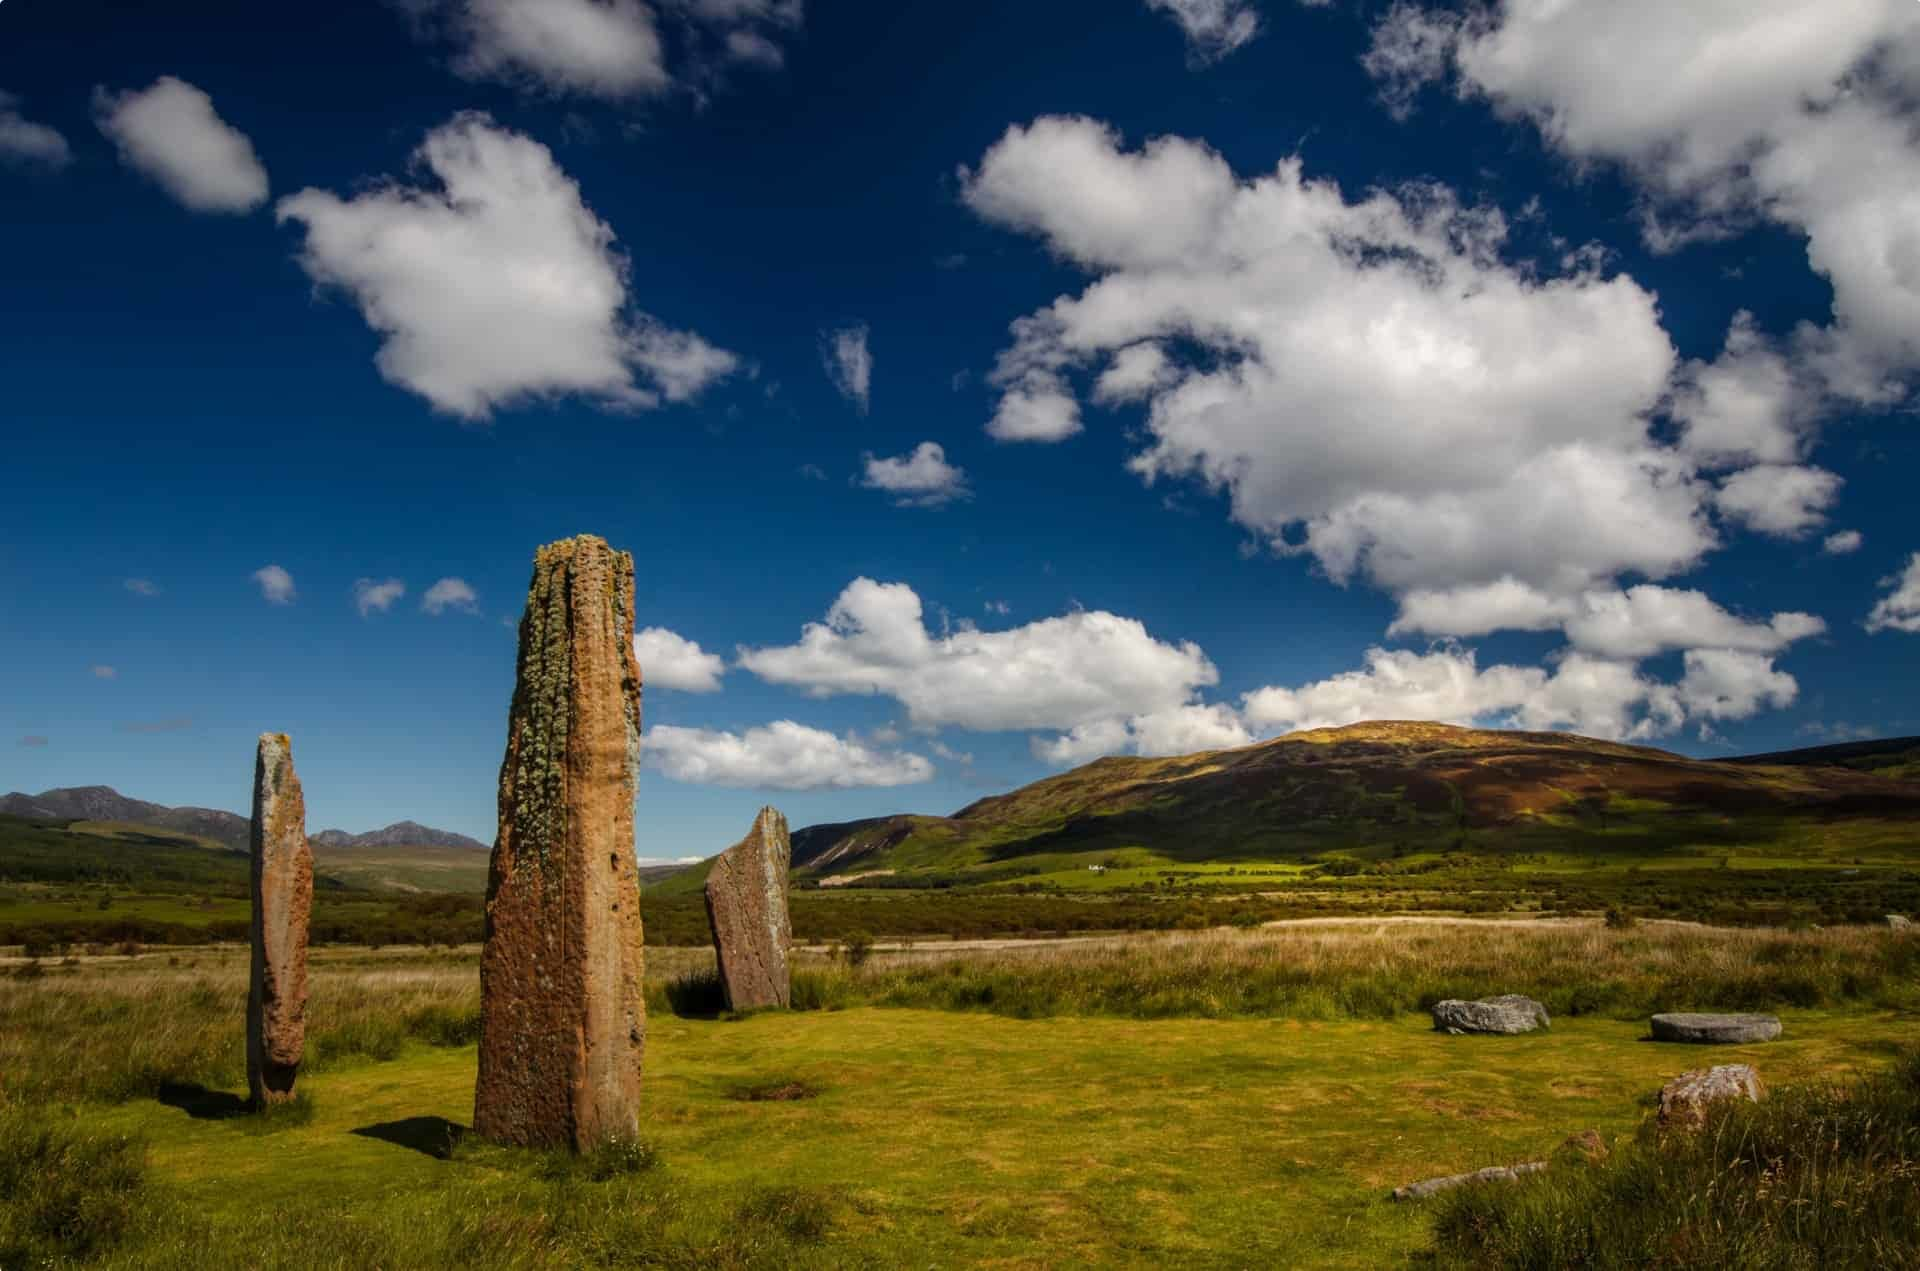 Exploring Britain's Neolithic past